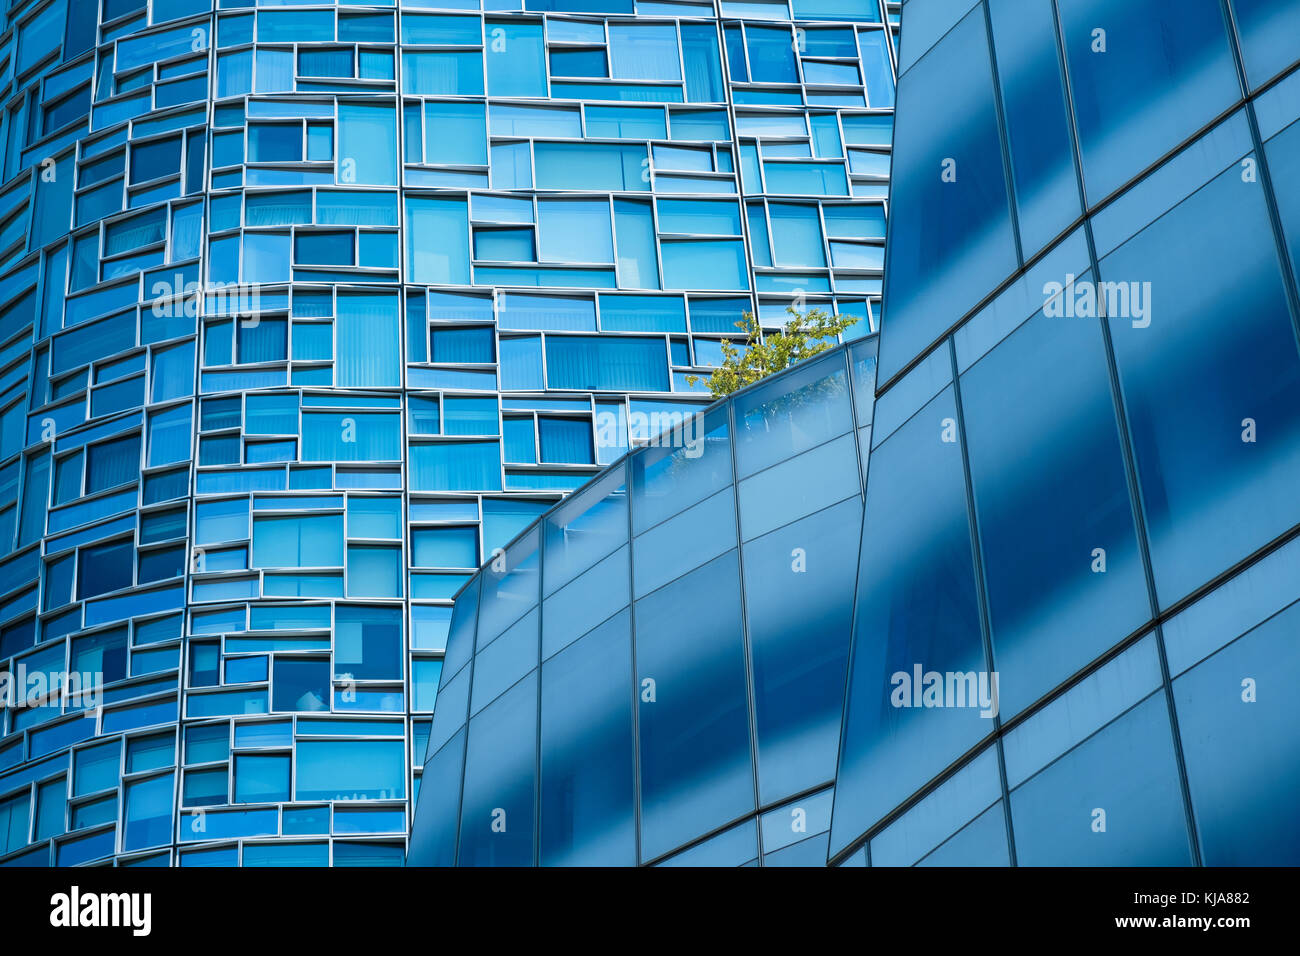 Detail from skyscrapers in New York. - Stock Image